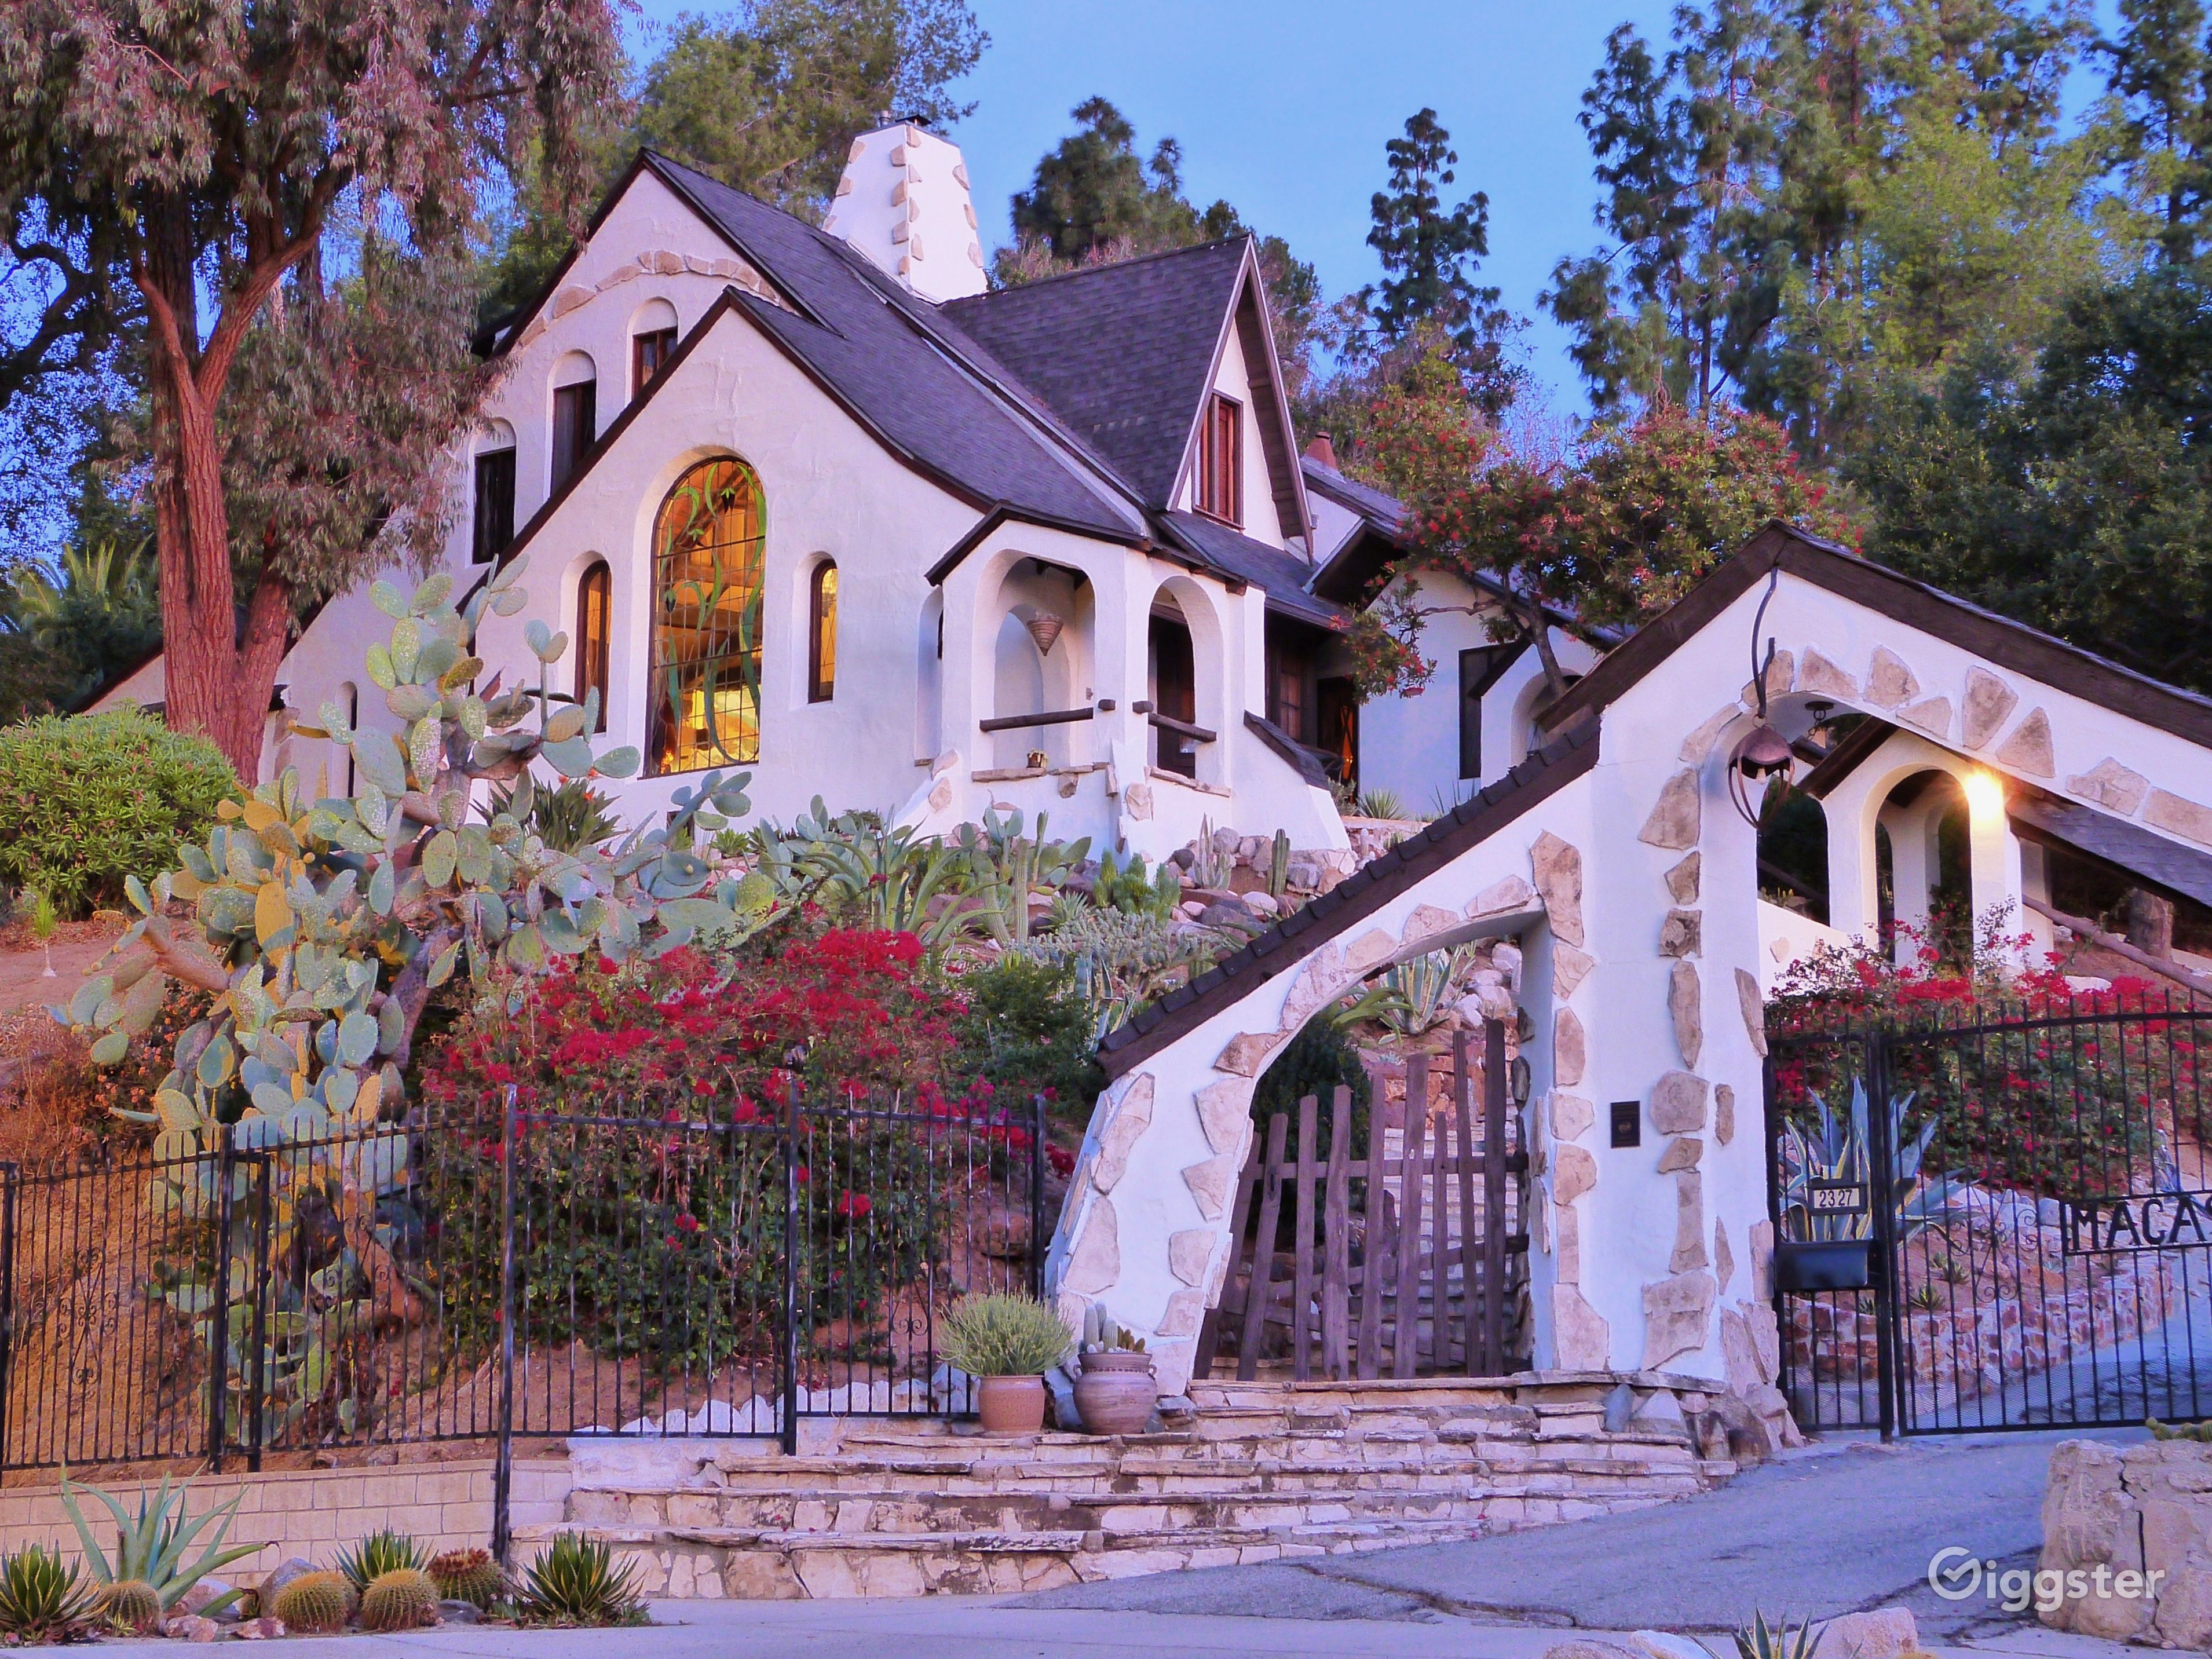 Fairytale Style Storybook House In Eagle Rock Rent This Location On Giggster